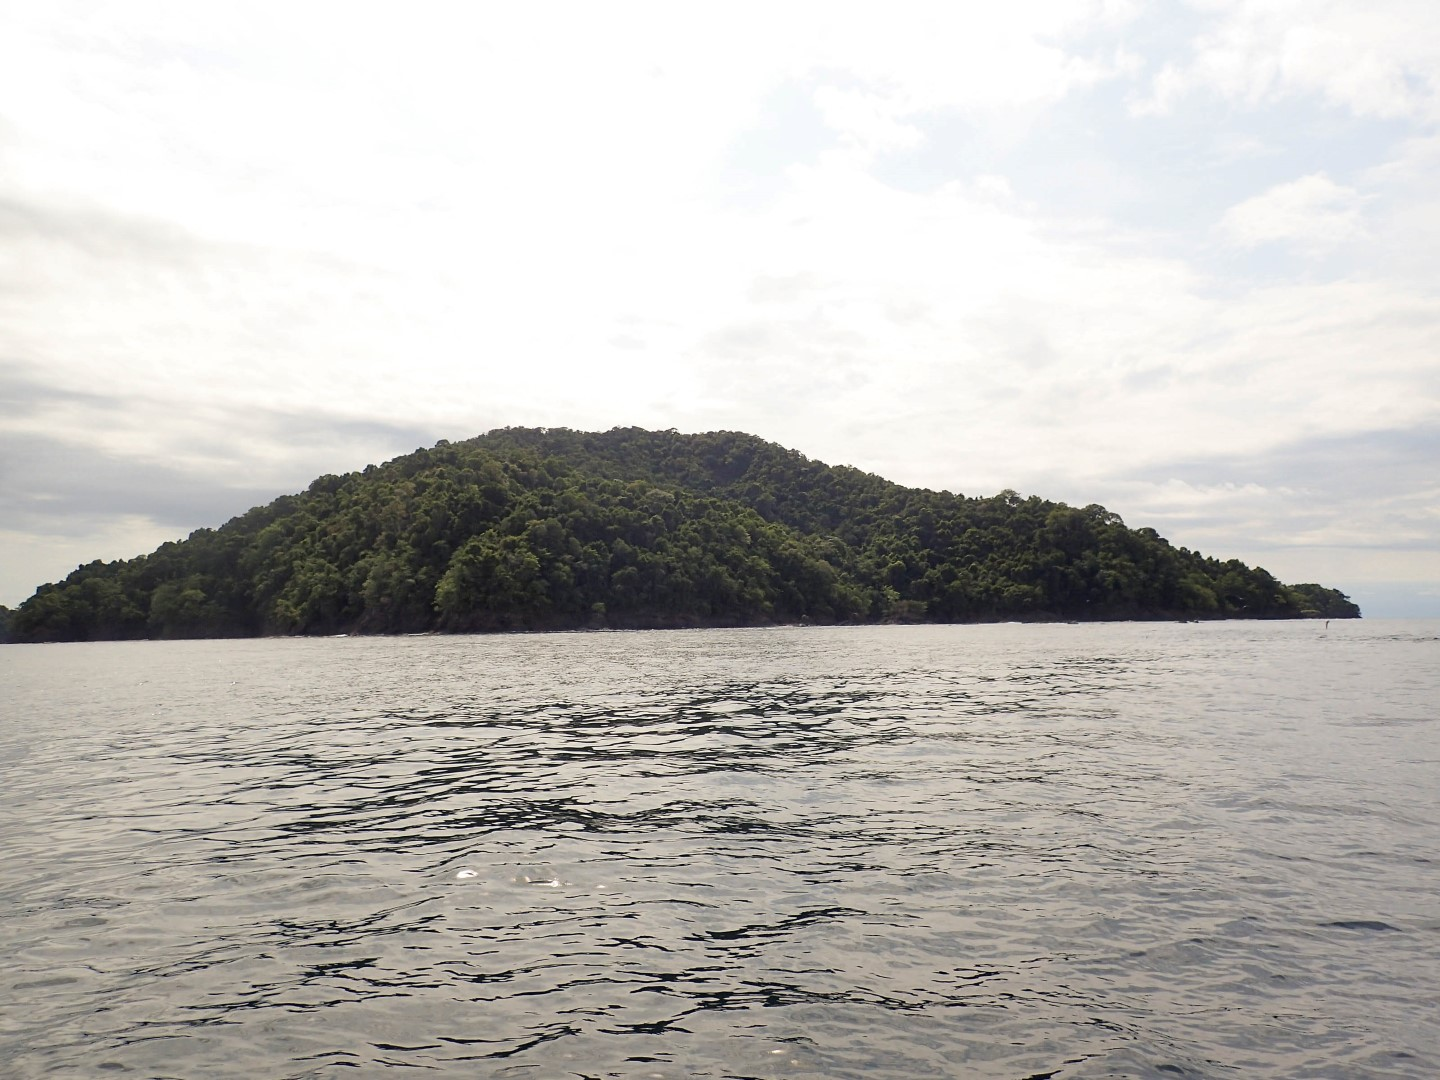 Santa Catalina, The Island of Coiba